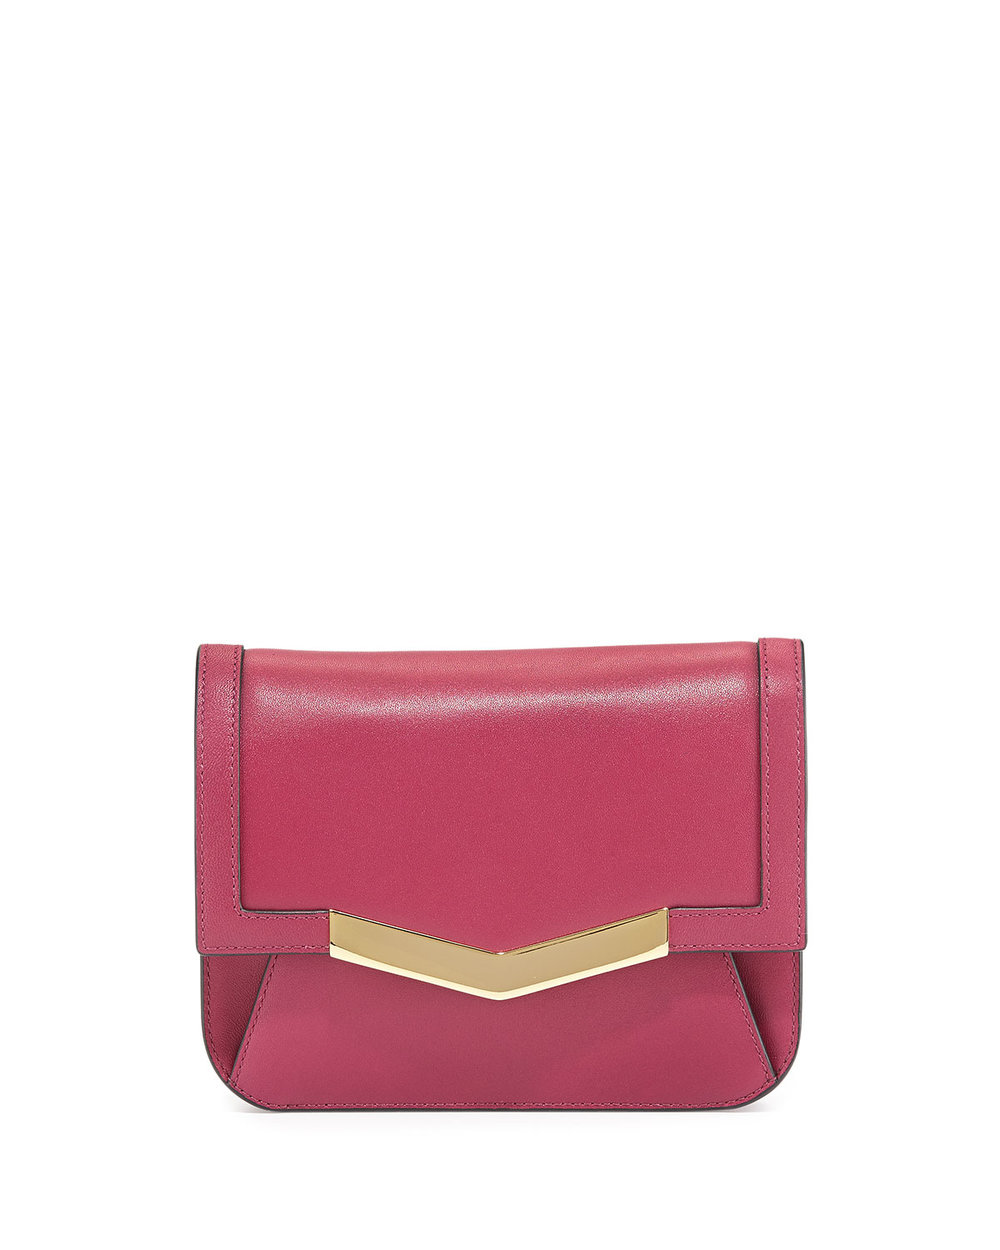 Time's Arrow Calfskin Chevron-Detail Belt Bag, Dahlia. Last Call Neiman Marcus. Was: $275. Now: $115 because the Friends and Family event is happening! 40% off for card holders w/ code: FRIEND40 or 30% off  for everyone until March 8th!